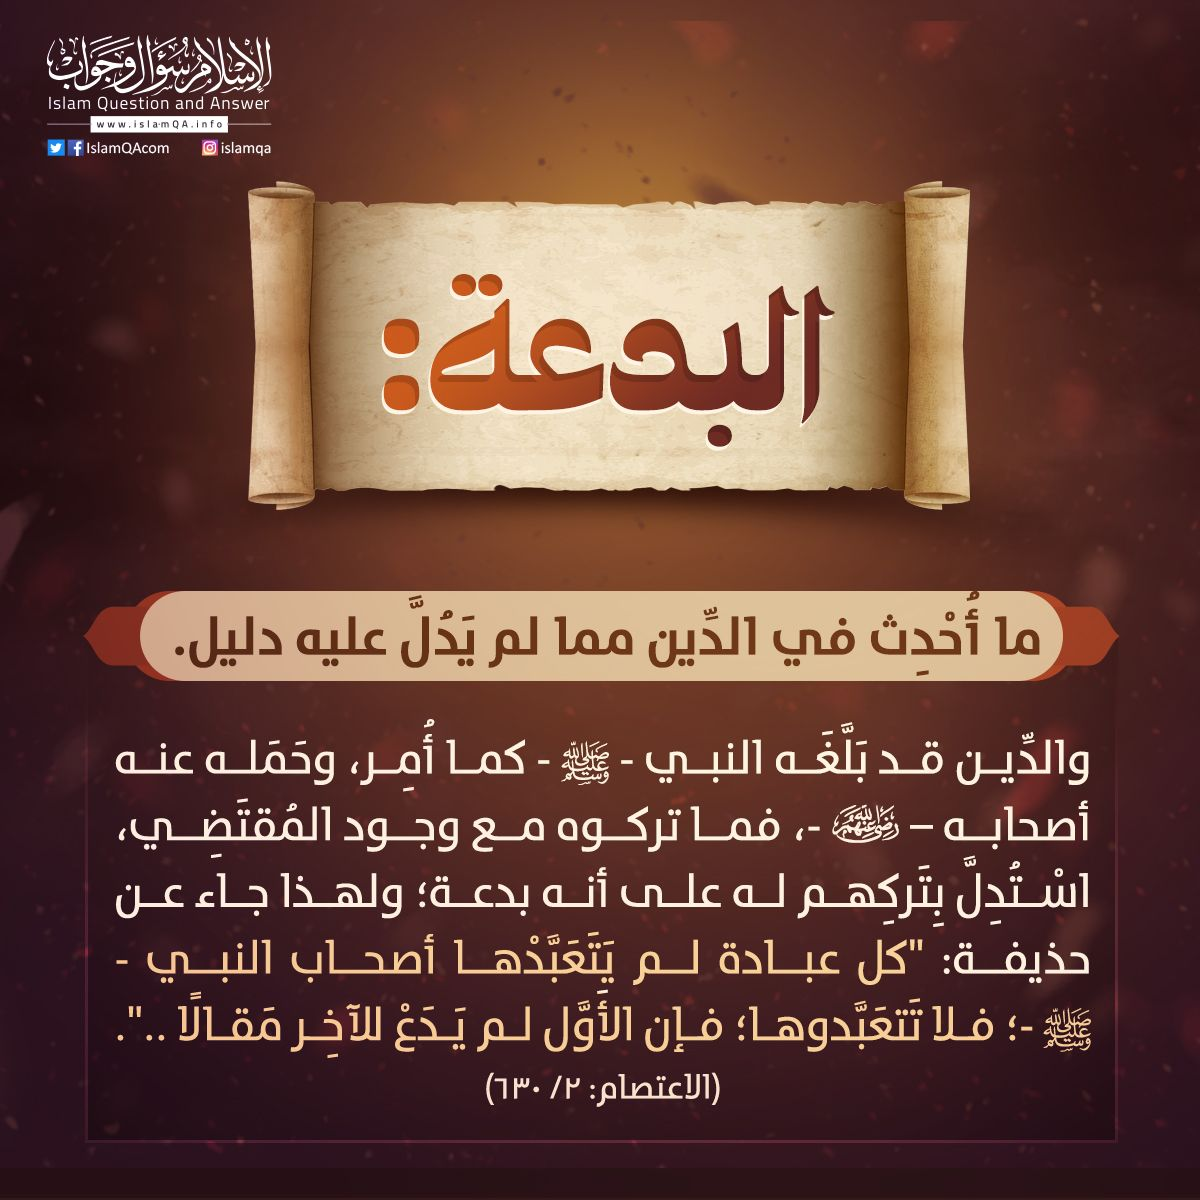 O U Oºo Uso C O U Oªus O U U U O U U O O U U O O U Uso O Oœ U Us O O O O O C O U U U Uˆoo U U O O O Usuƒ This Or That Questions Question And Answer Islam